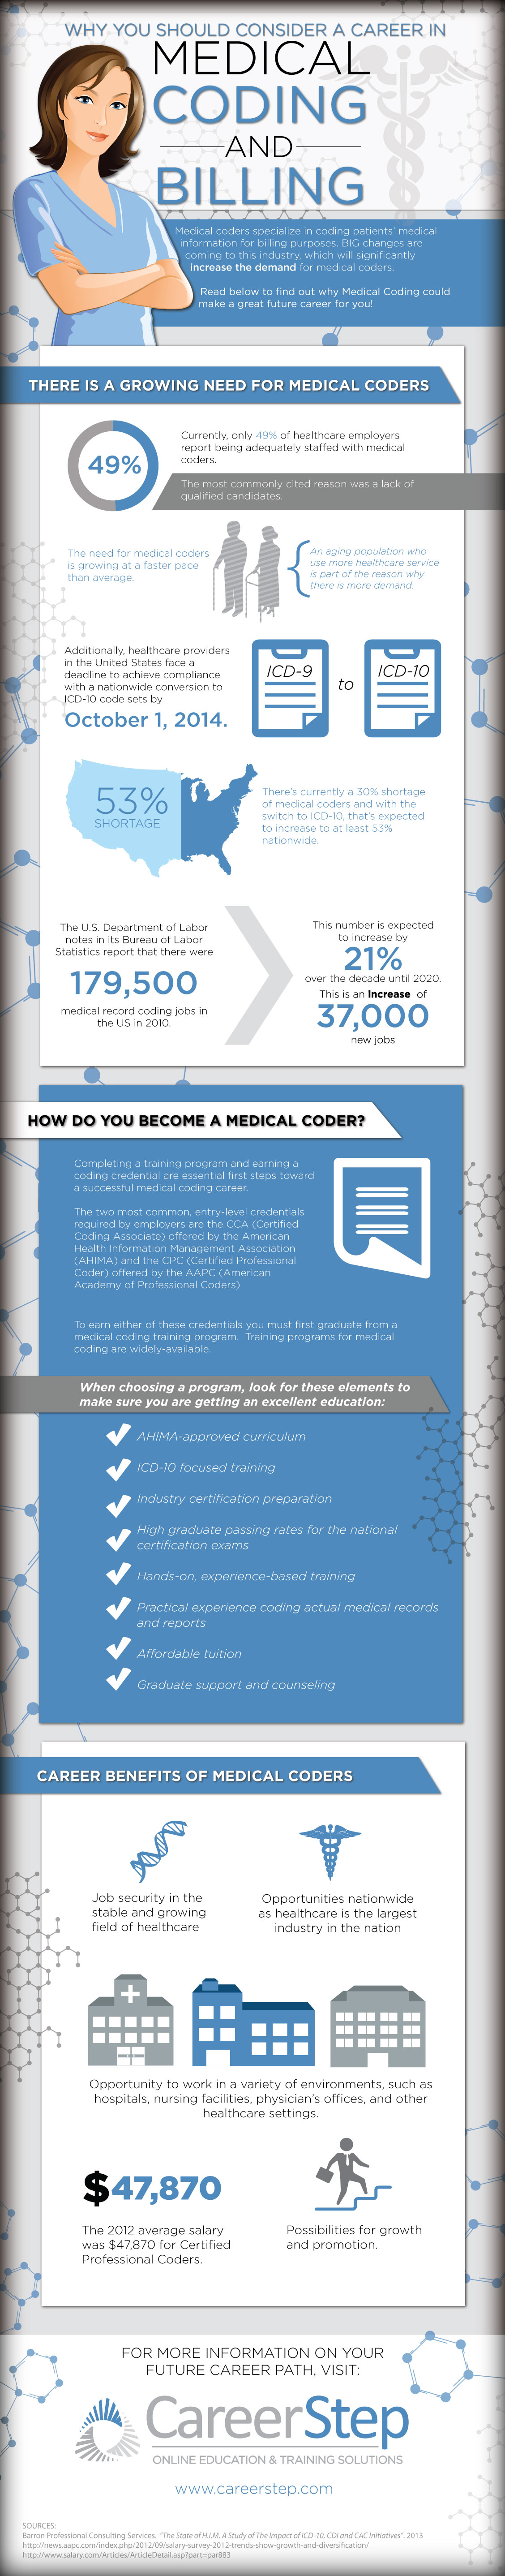 medical billing and coding paper A look at how medical billing and coding (mb&c) professionals interact with healthcare providers, patients, and insurance payers.